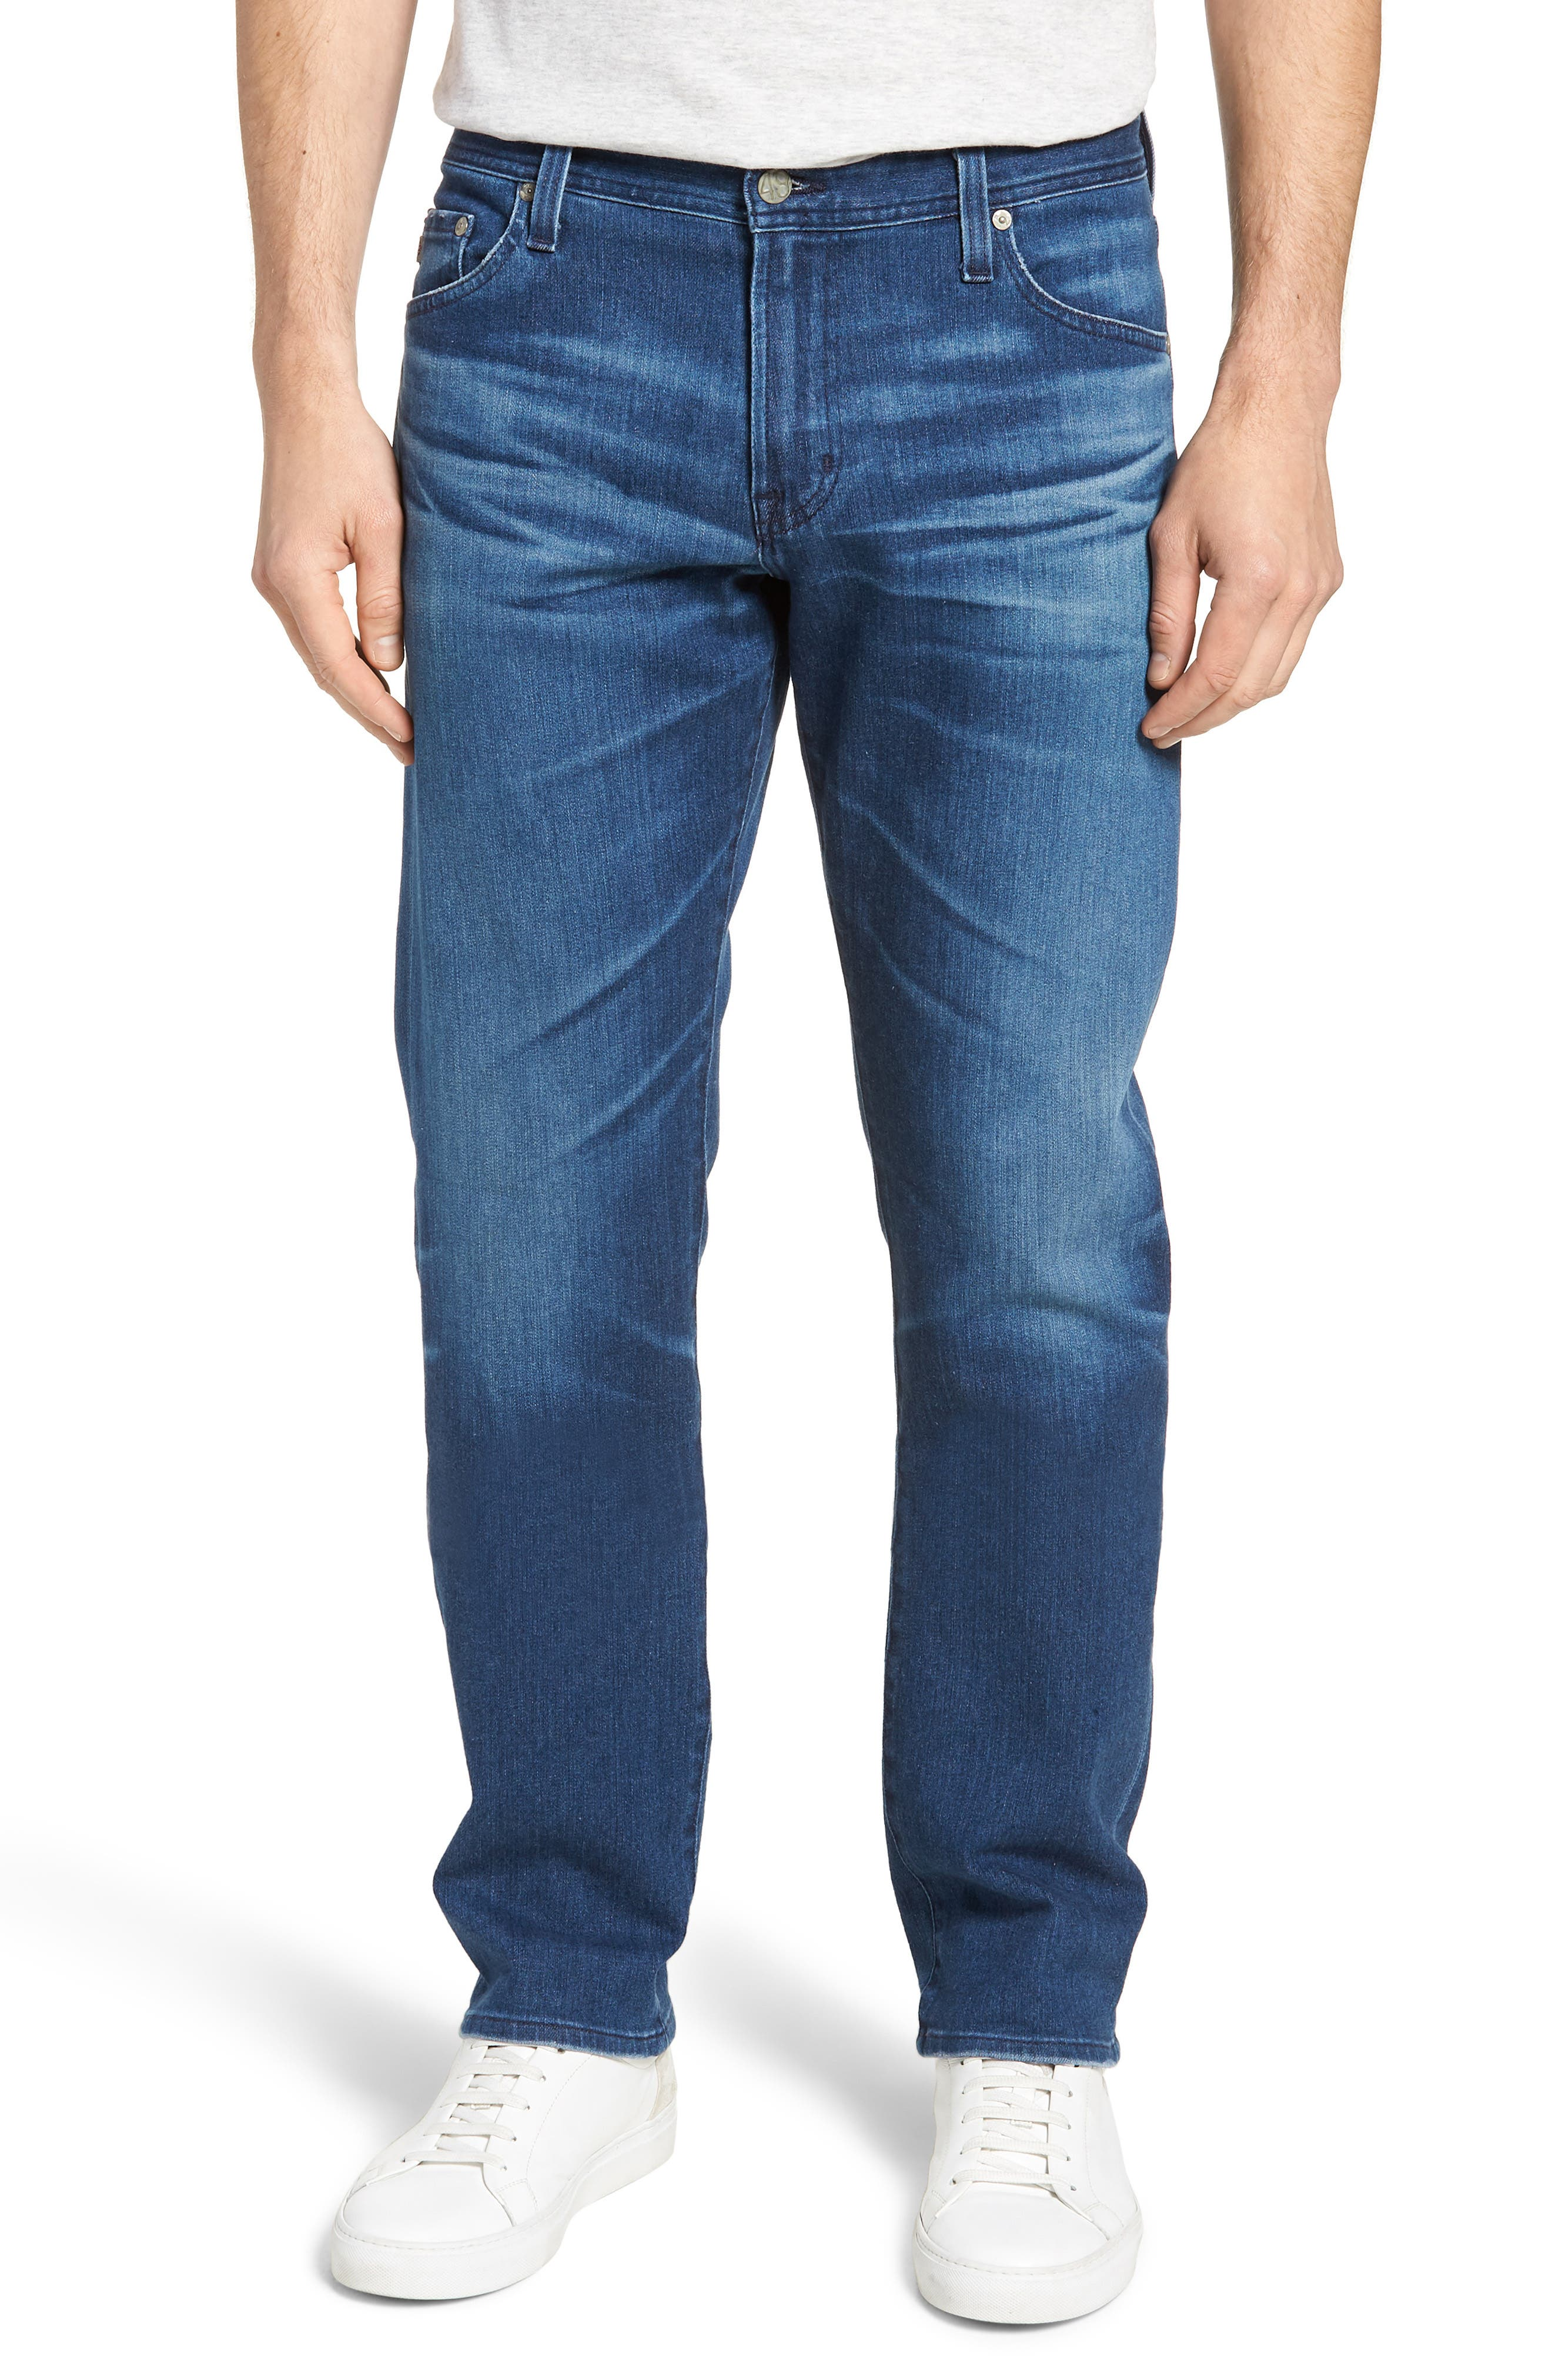 Graduate Slim Straight Fit Jeans,                         Main,                         color, 10 Years Paperback